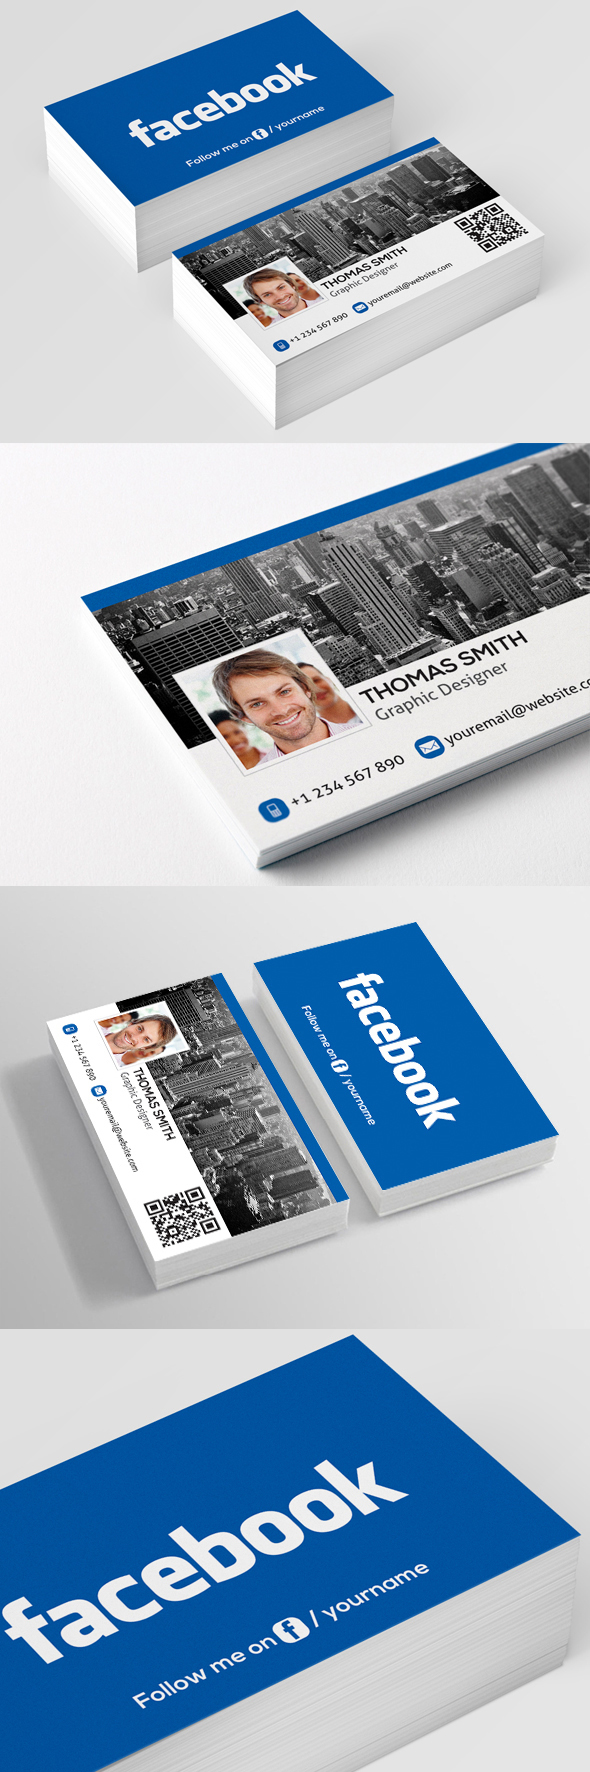 Interesting free facebook business card template with qr code interesting free facebook business card template with qr code available for download as psd file thanks to mohammad ali nemati fbccfo Gallery